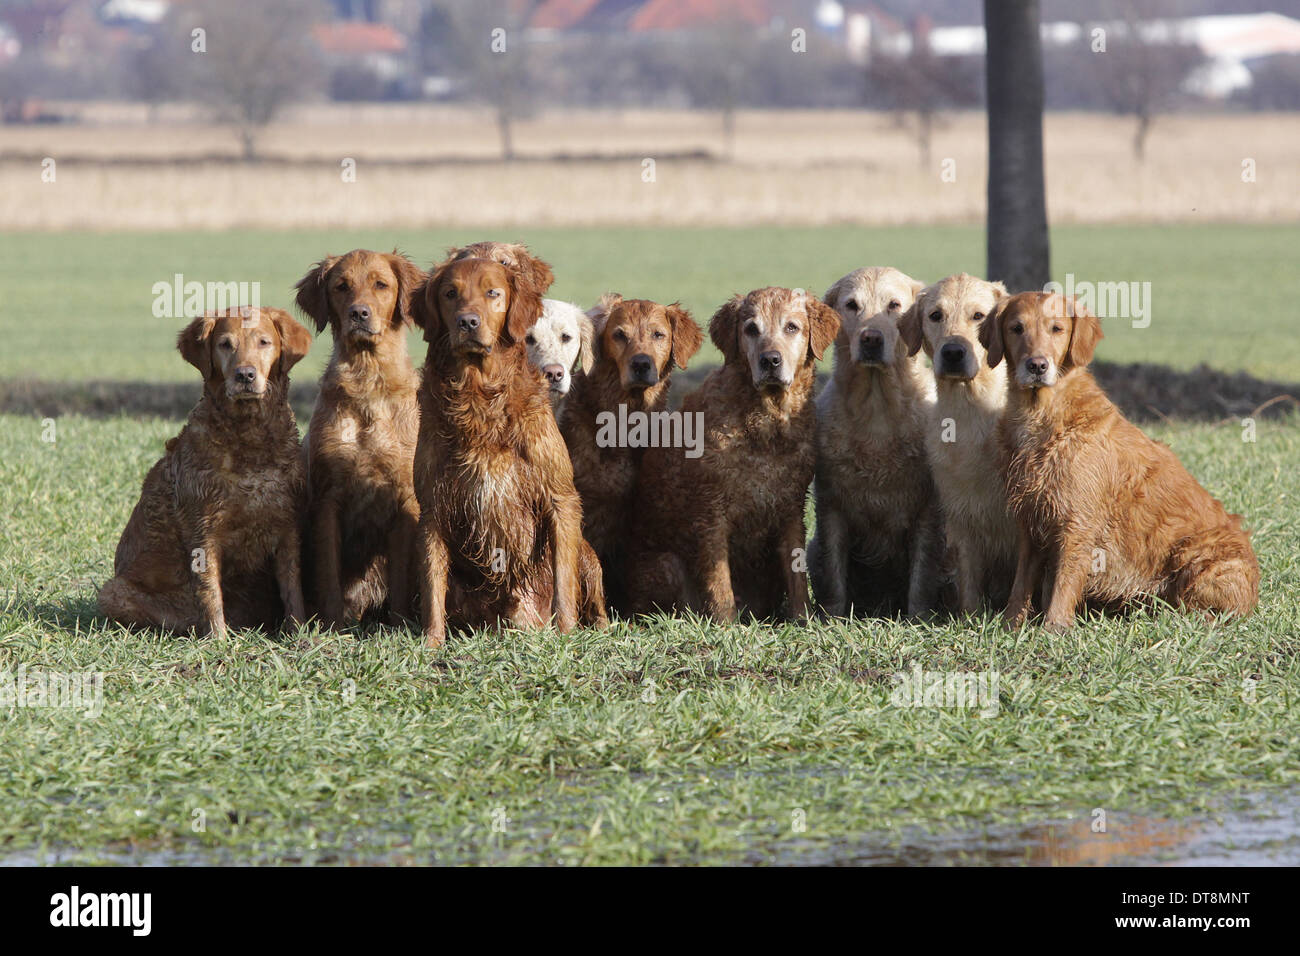 Golden Retriever Group Of Dogs In Different Coat Colours From Light